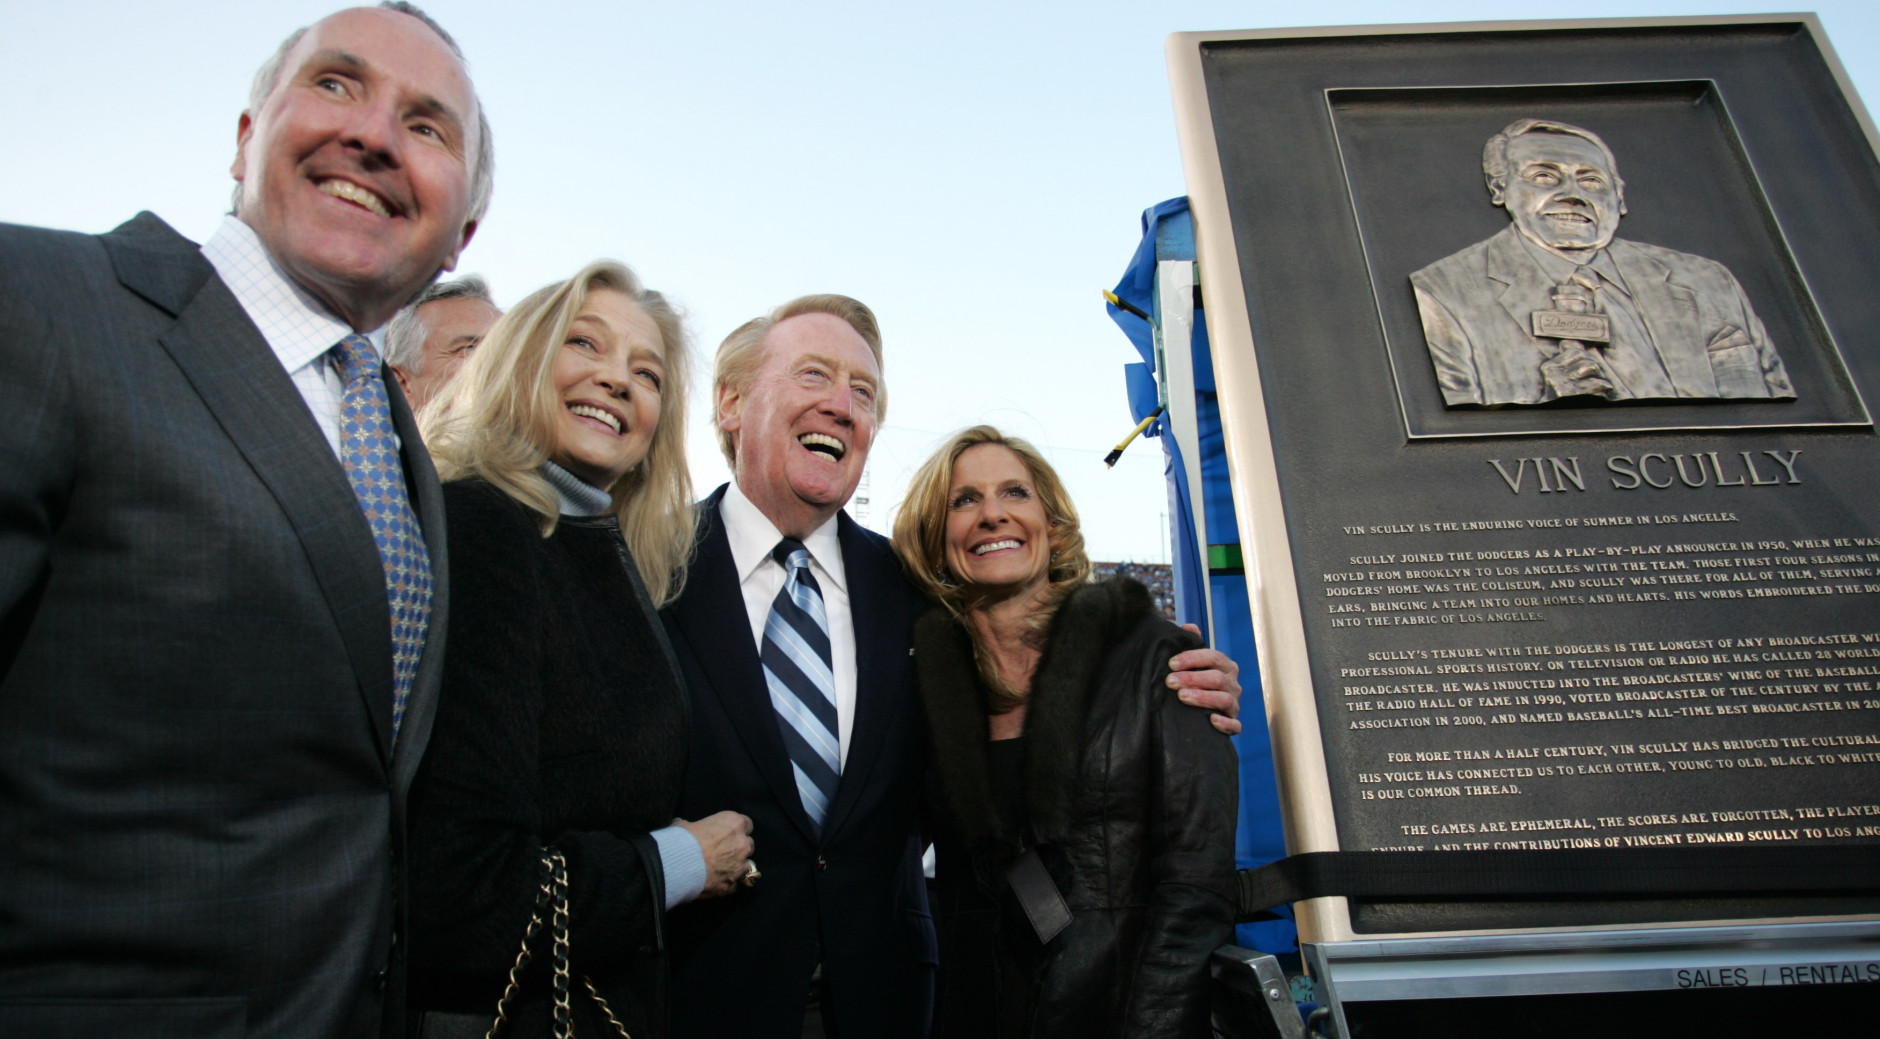 Los Angeles Dodgers owner Frank McCourt, left, wife Jamie, and Vin Scully, second from left, with wife Sandra, pose for photos next to a plaque honoring Scully before the start of an exhibition baseball game between the Los Angeles Dodgers and Boston Red Sox, Saturday, March 29, 2008 at the Los Angeles Coliseum in Los Angeles. The exhibition contest is part of the 50th anniversary of the Dodgers' move west from Brooklyn and is expected to draw a record crowd of over 115,000. (AP Photo/Branimir Kvartuc)